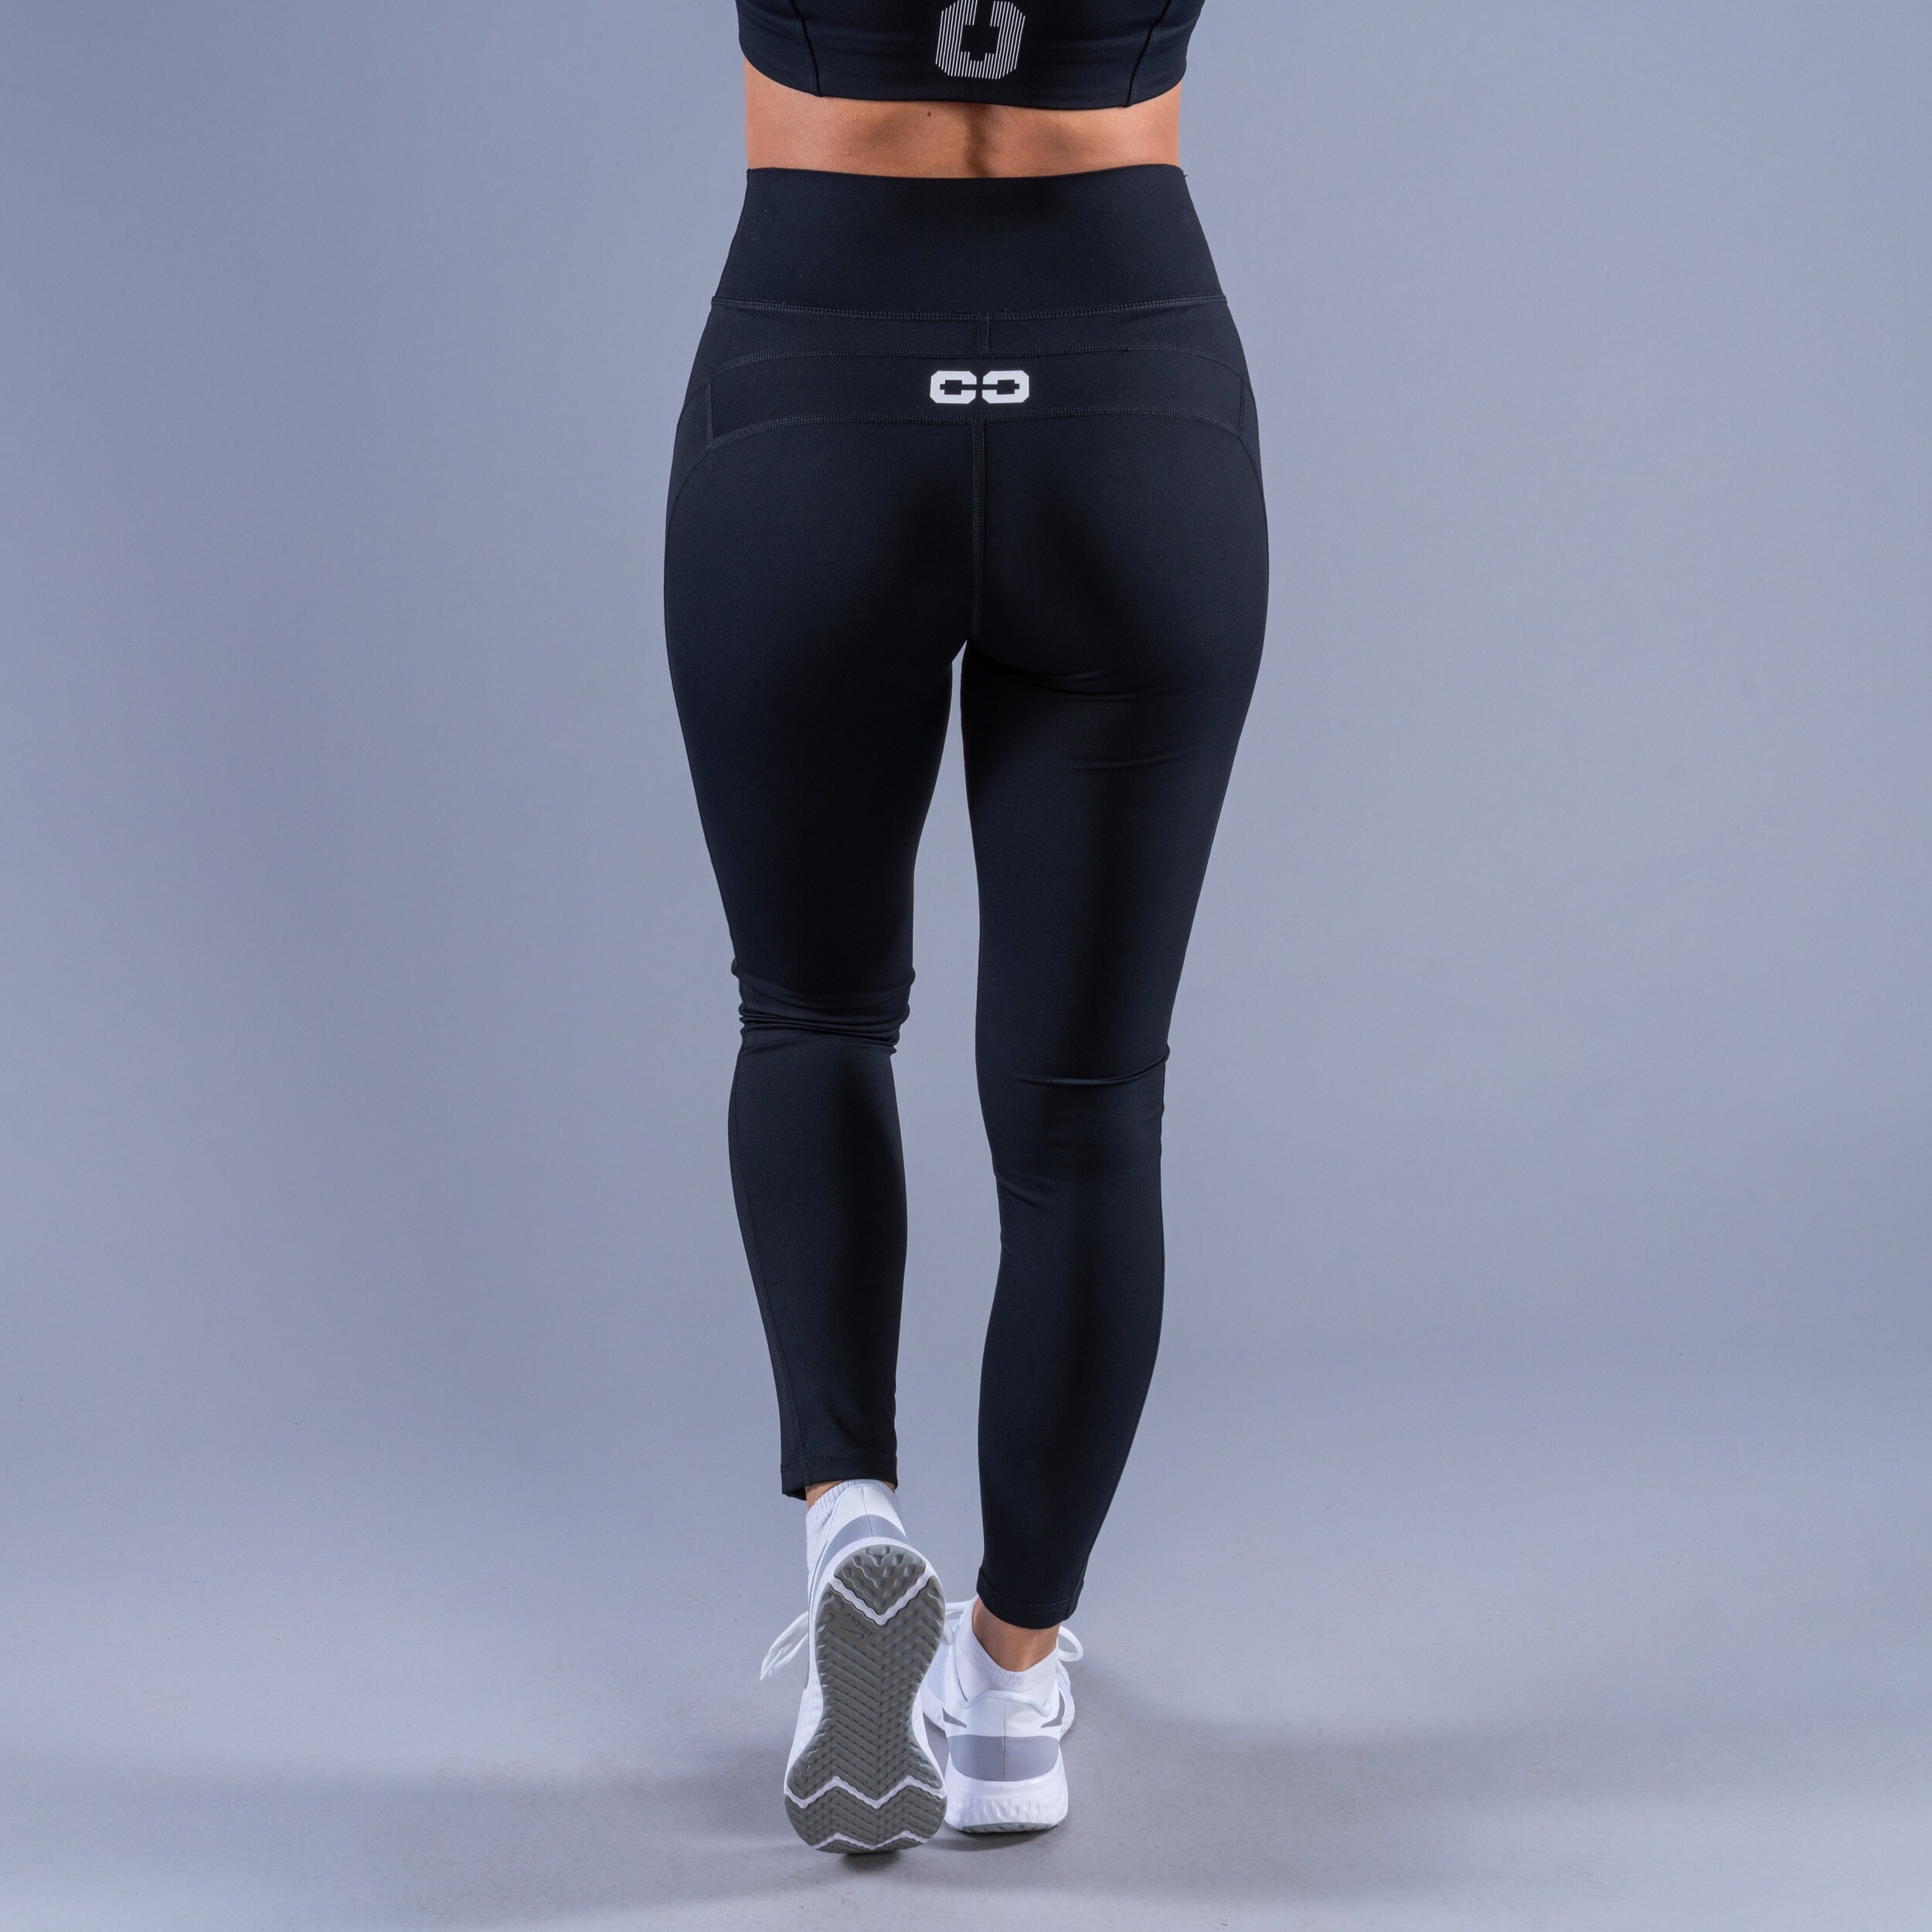 CLN Omni ws tights Black